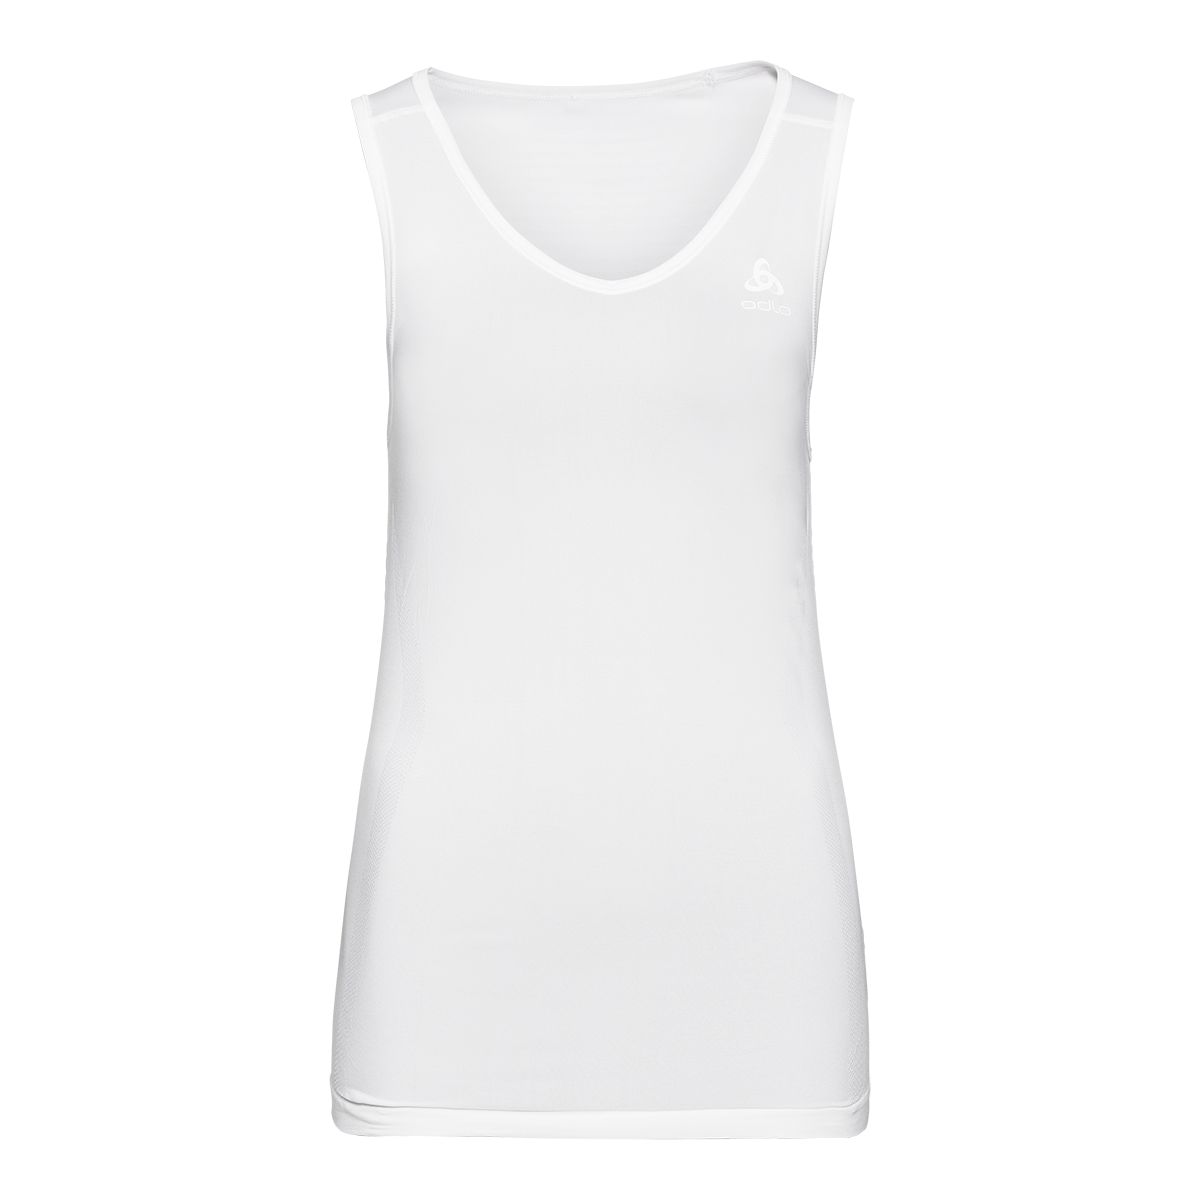 PERFORMANCE X-LIGHT SUW TOP Women